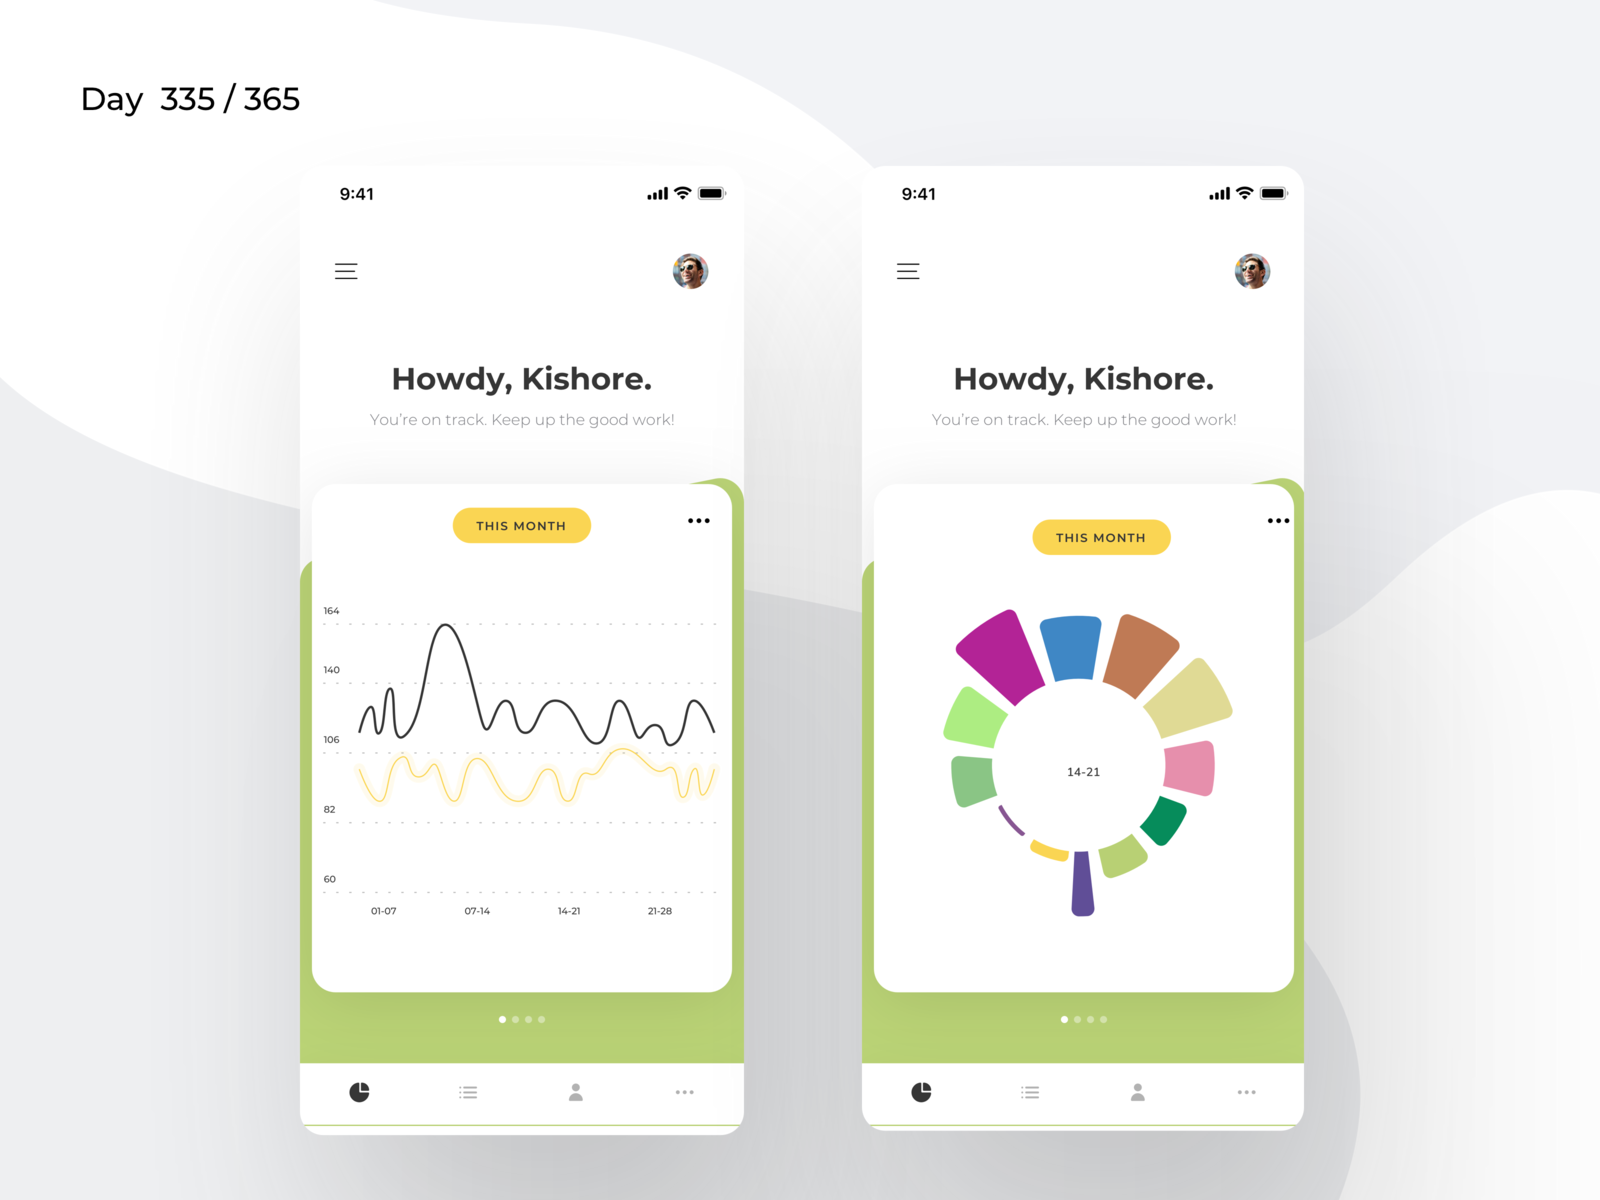 Personal Health Tracker App | Day 335/365 - Project365 personal healthcare personal health statistics visualization graphs analytics design-challenge project365 daily-ui mobile-app sketch dashboard minimal dashboard-saturday data visualisation ios cards blog dashboard